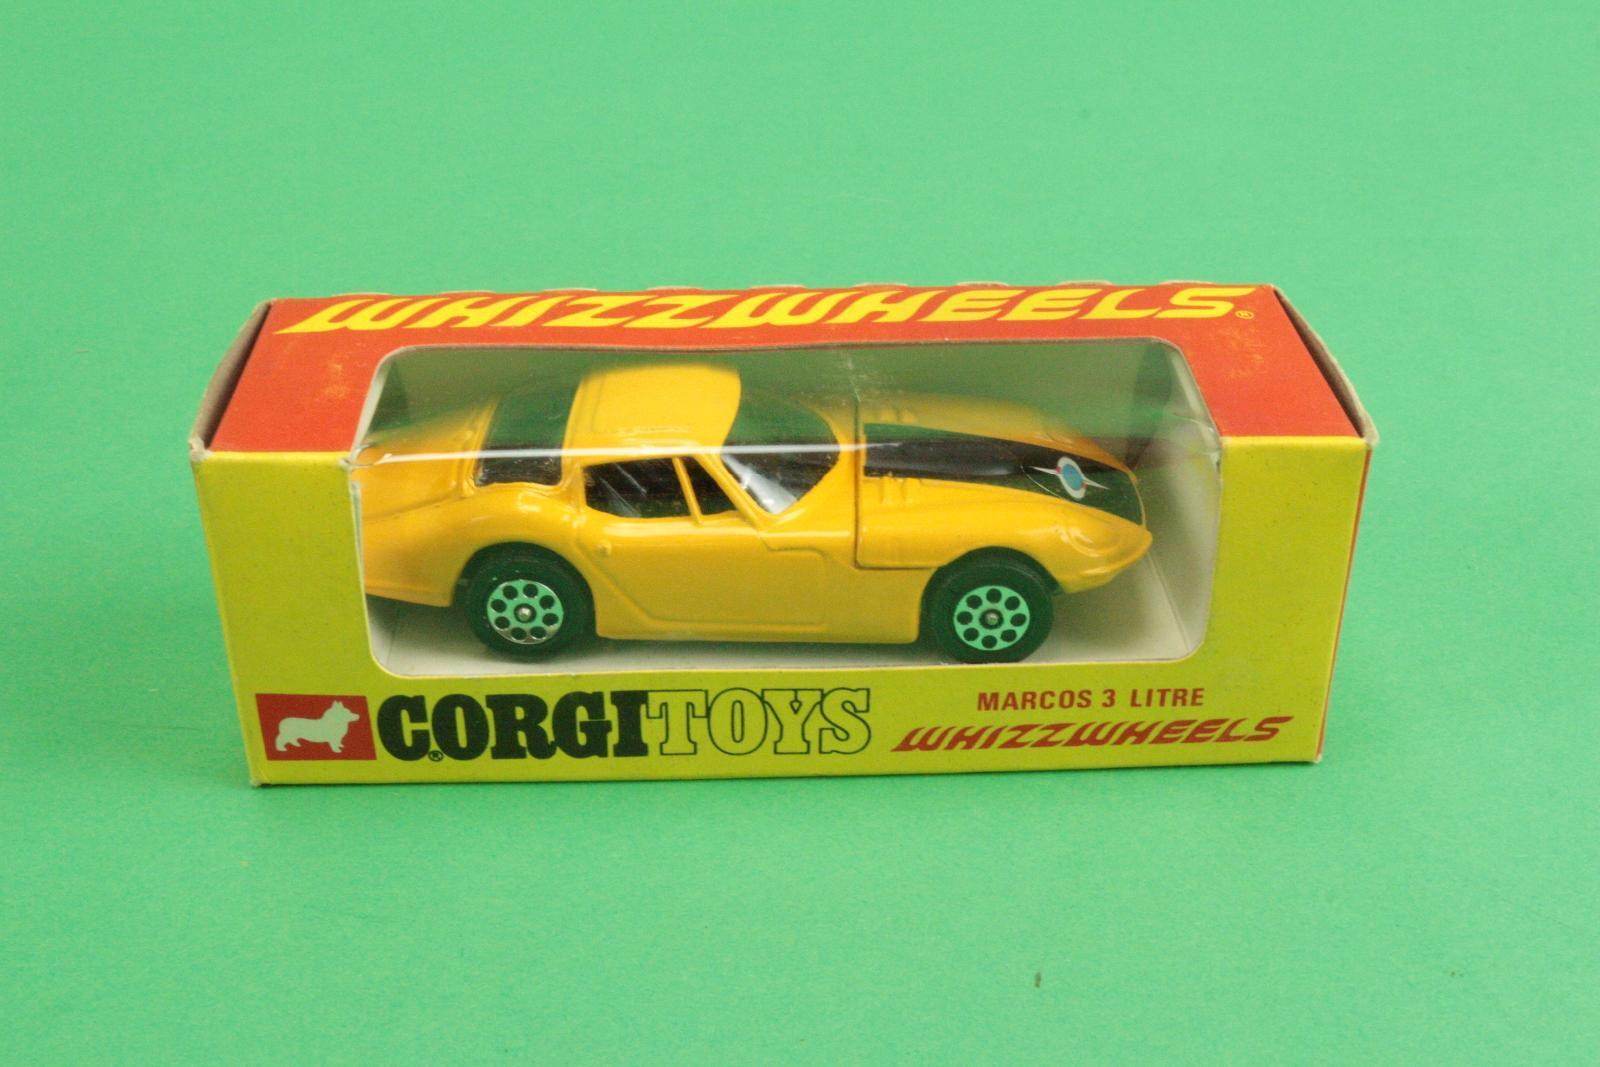 1 43 Corgi Toys Whizzwheels No 377 Marcos 3 litre inventory Fund [rr3-049]